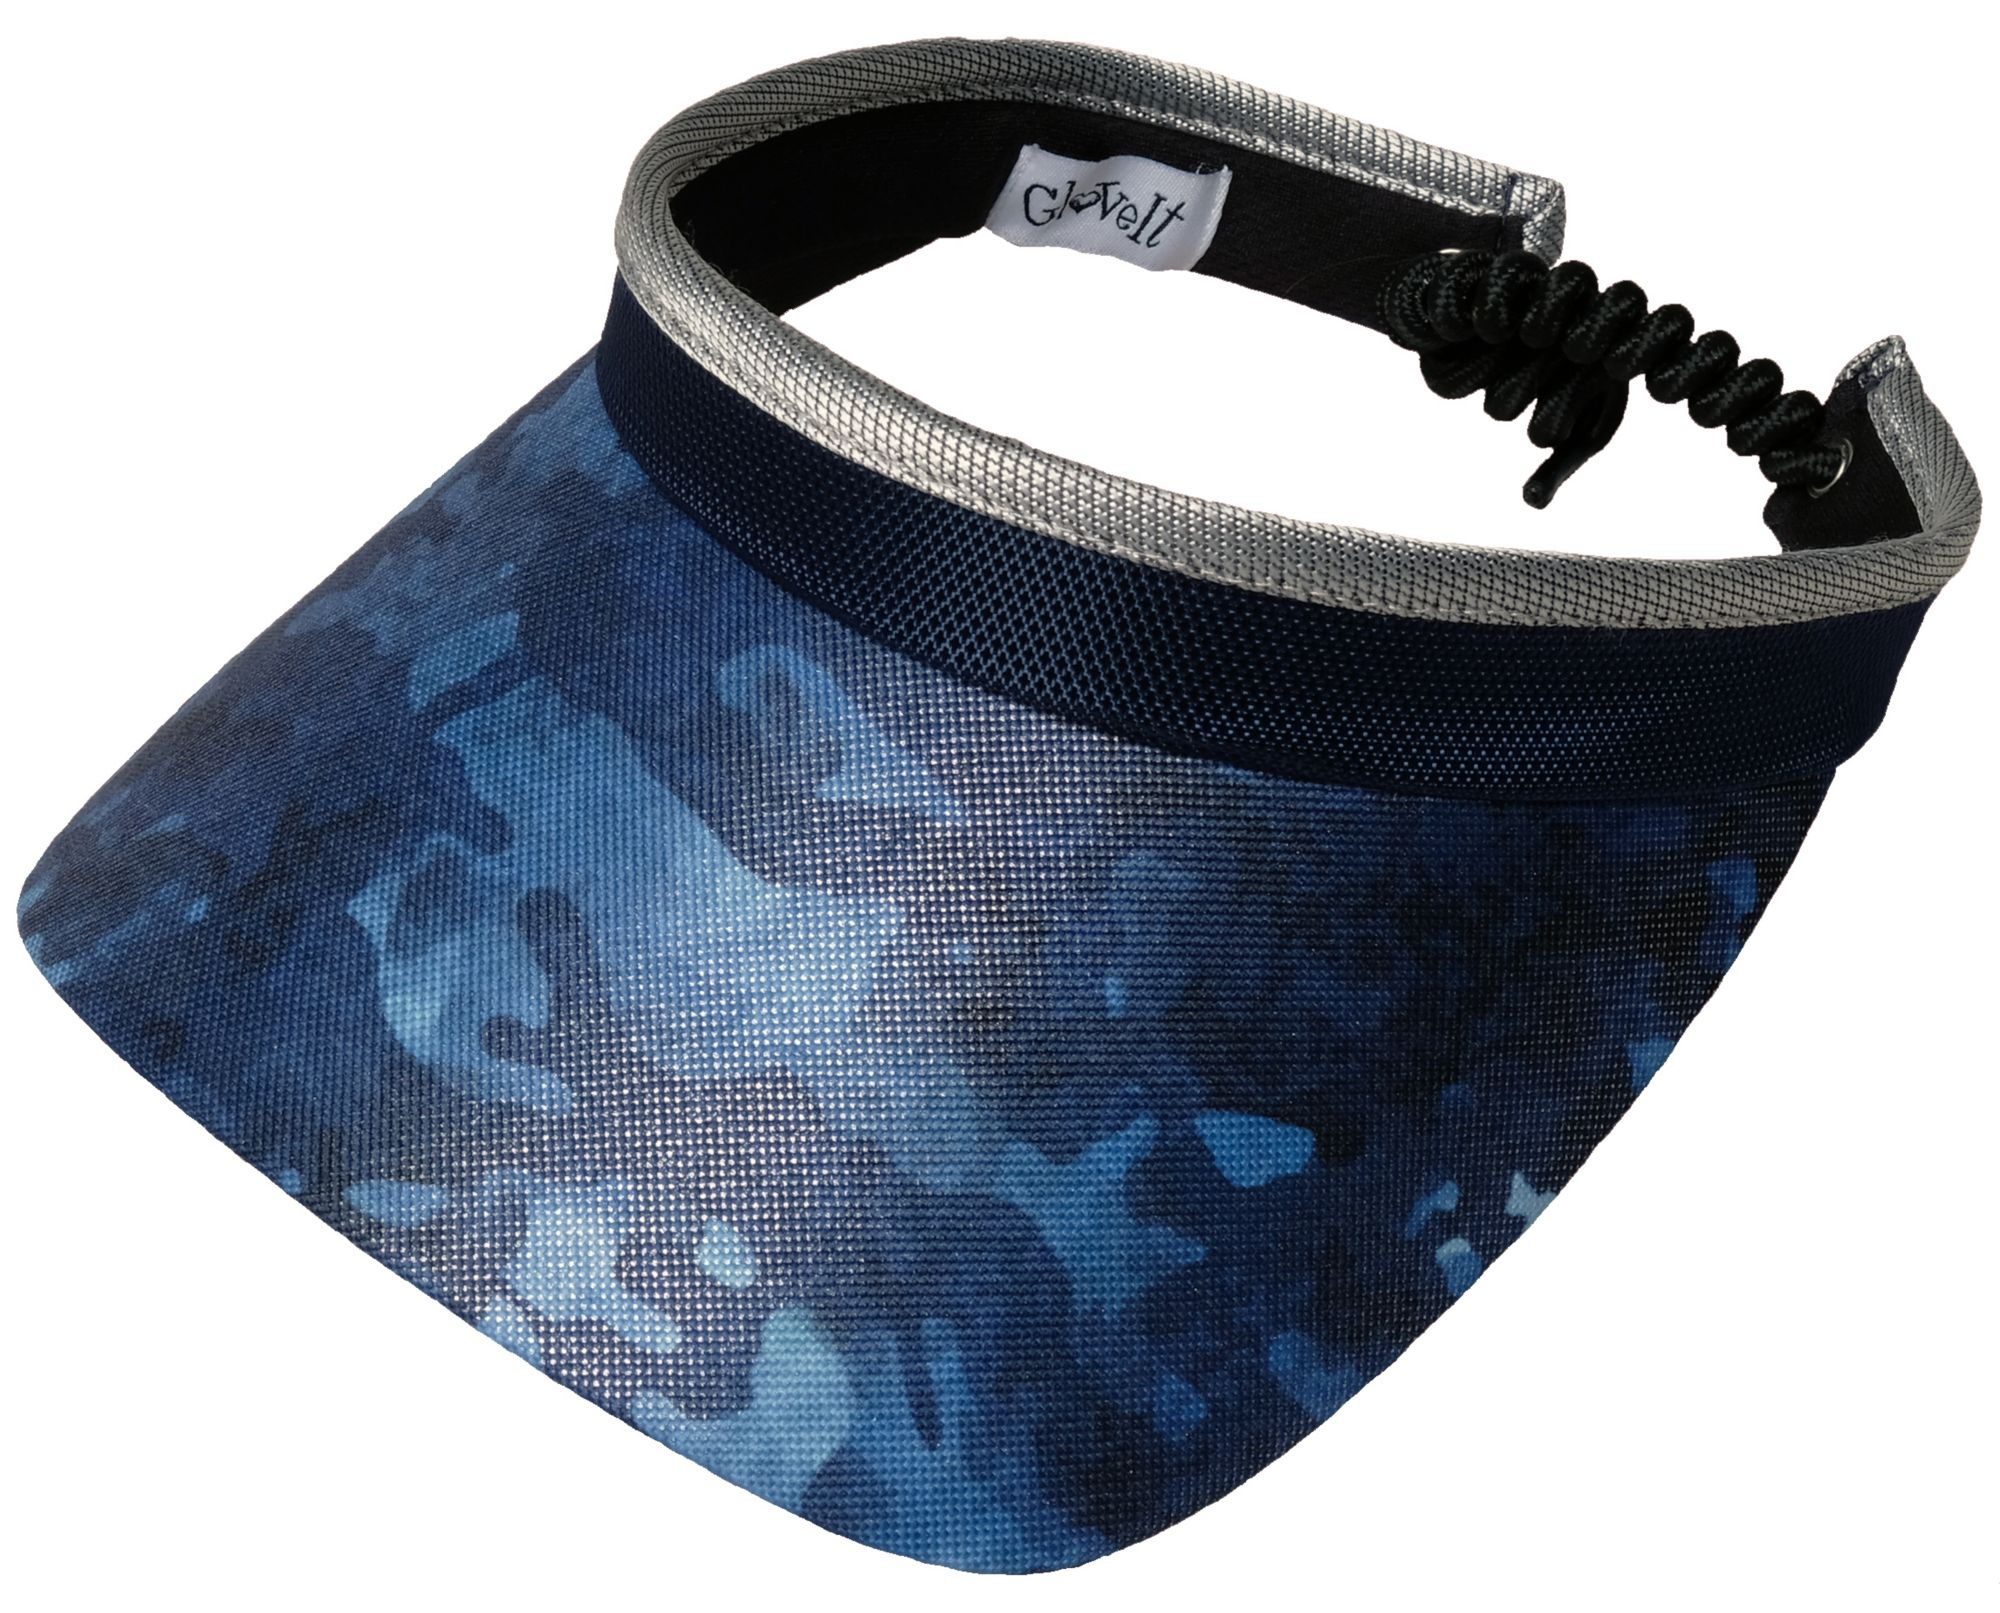 Glove It Women's Printed Coil Golf Visor, Size: One size, Blue thumbnail